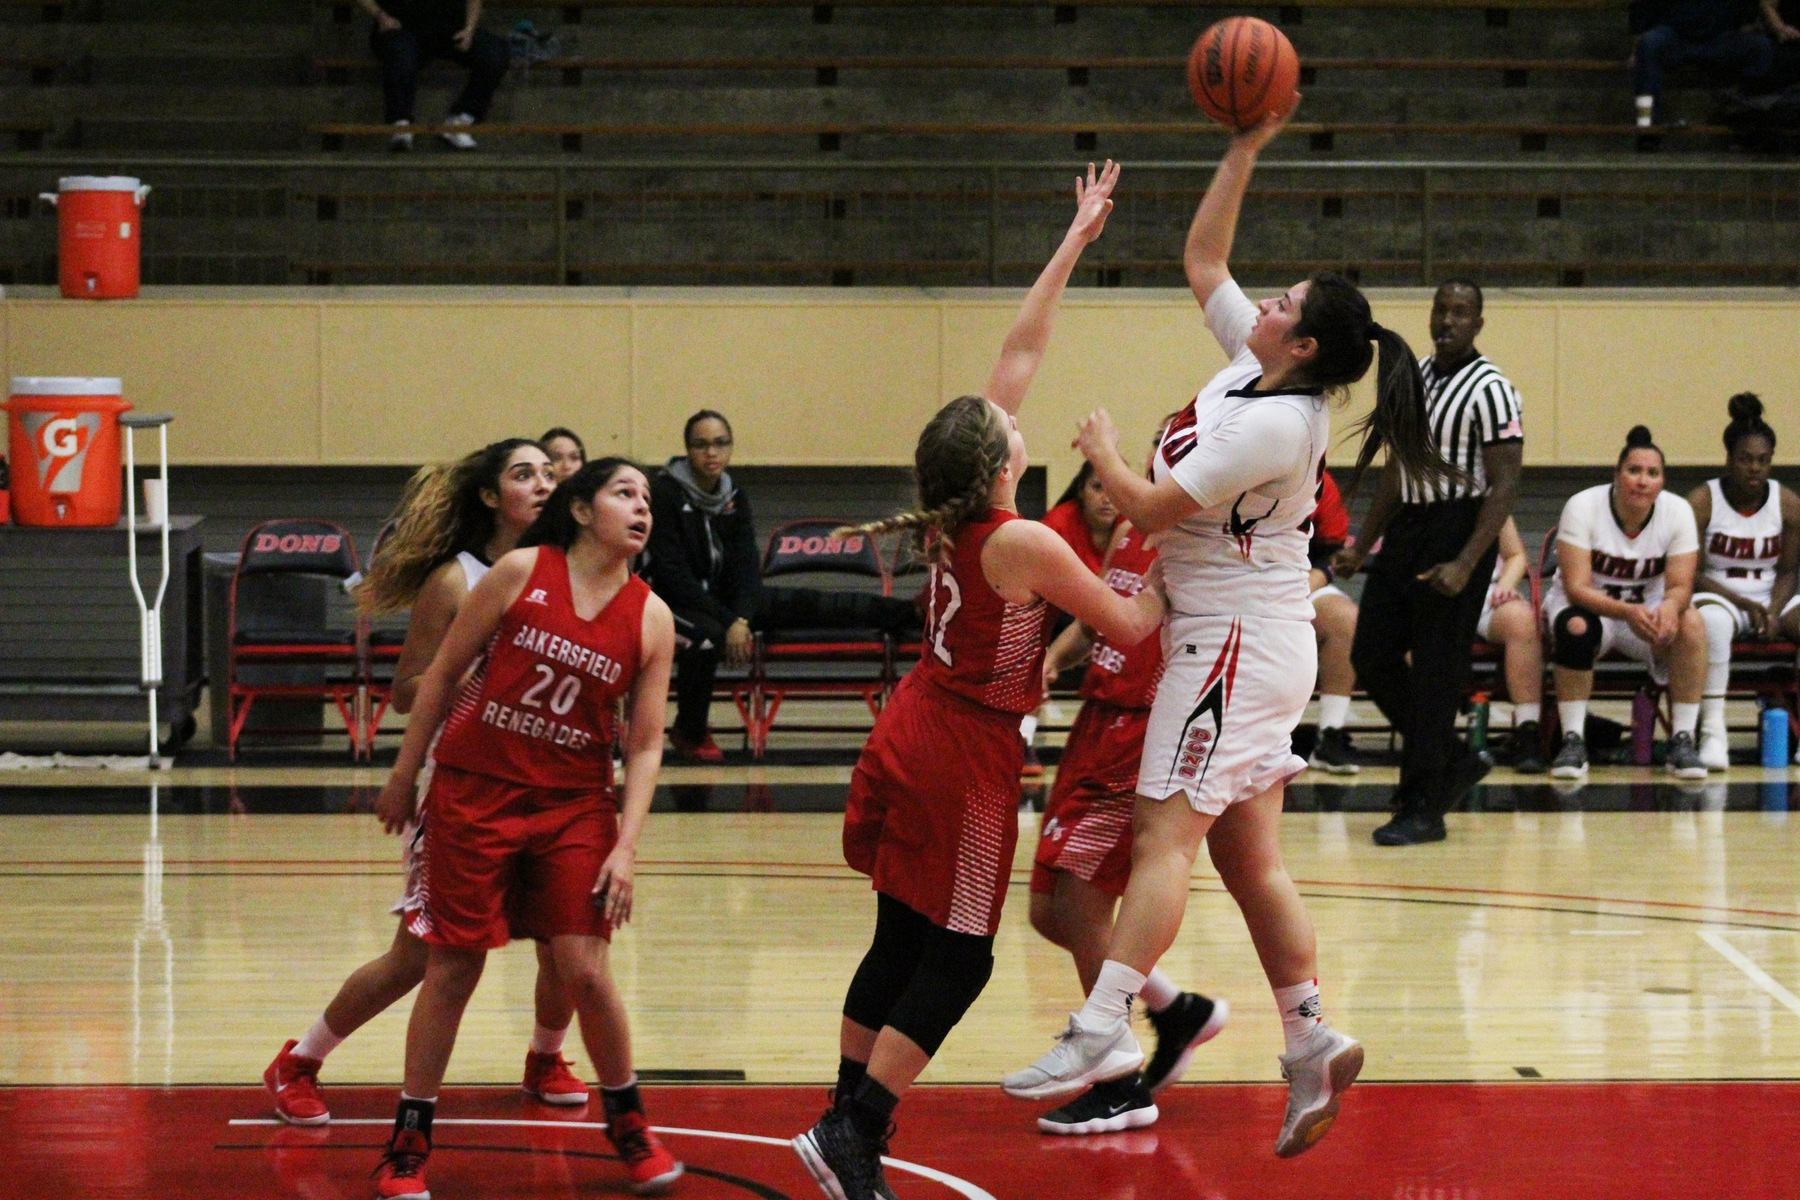 SAC Tops San Diego Mesa 84-60 to Advance in Tournament